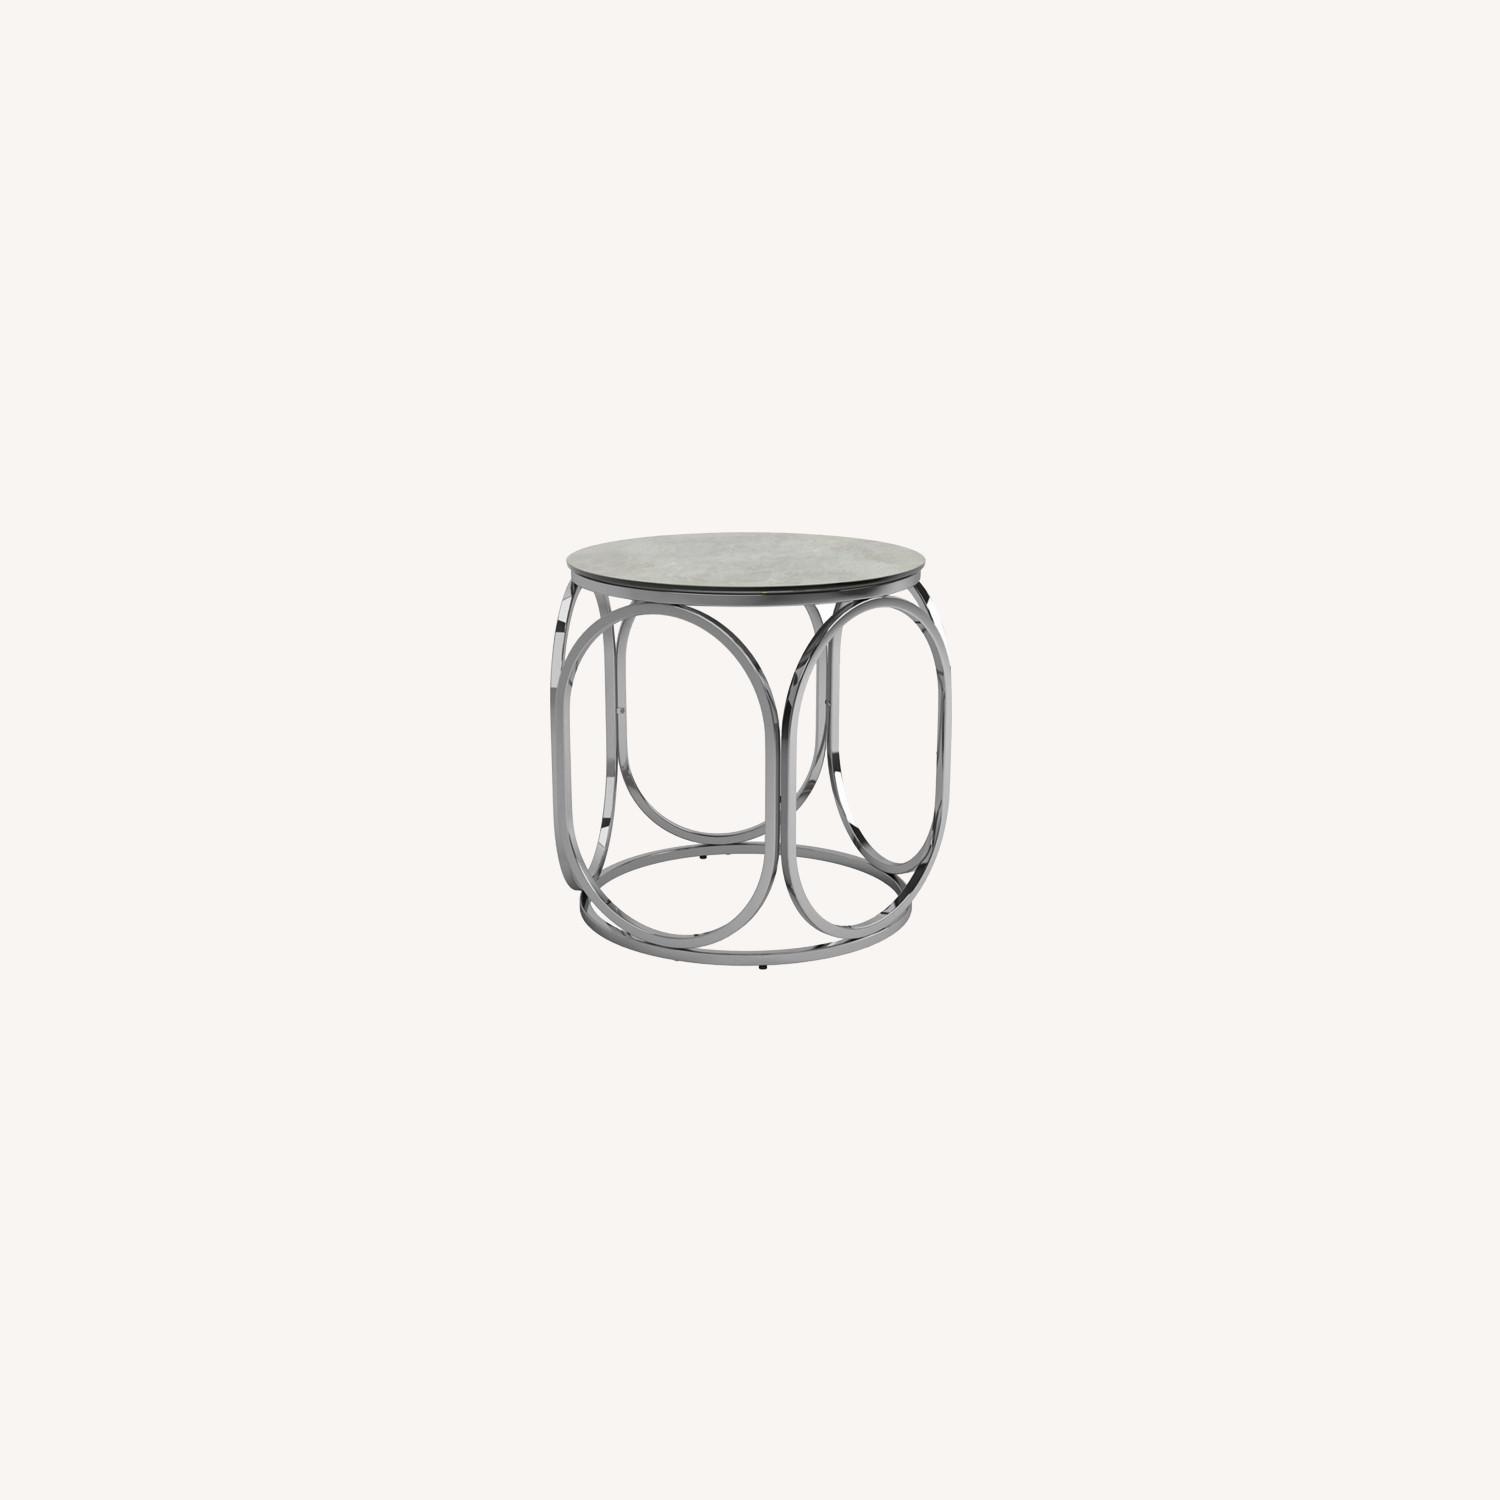 Circular Shapes End Table In Chrome Metal Finish - image-5